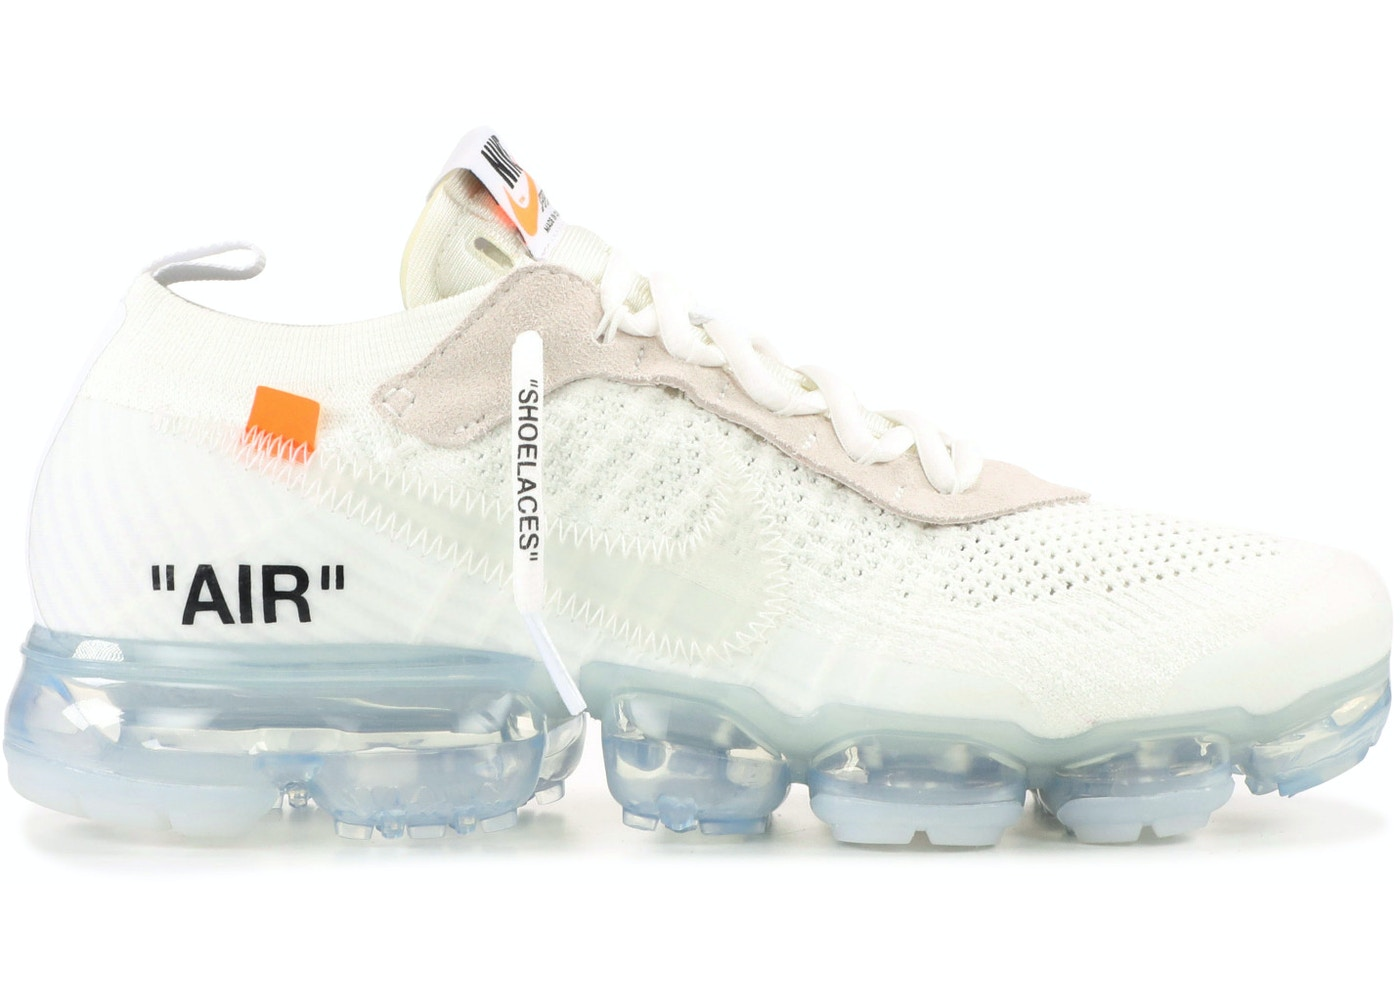 4ccbf8bd5b7 Air Vapormax Off White 2018 - AA3831-100